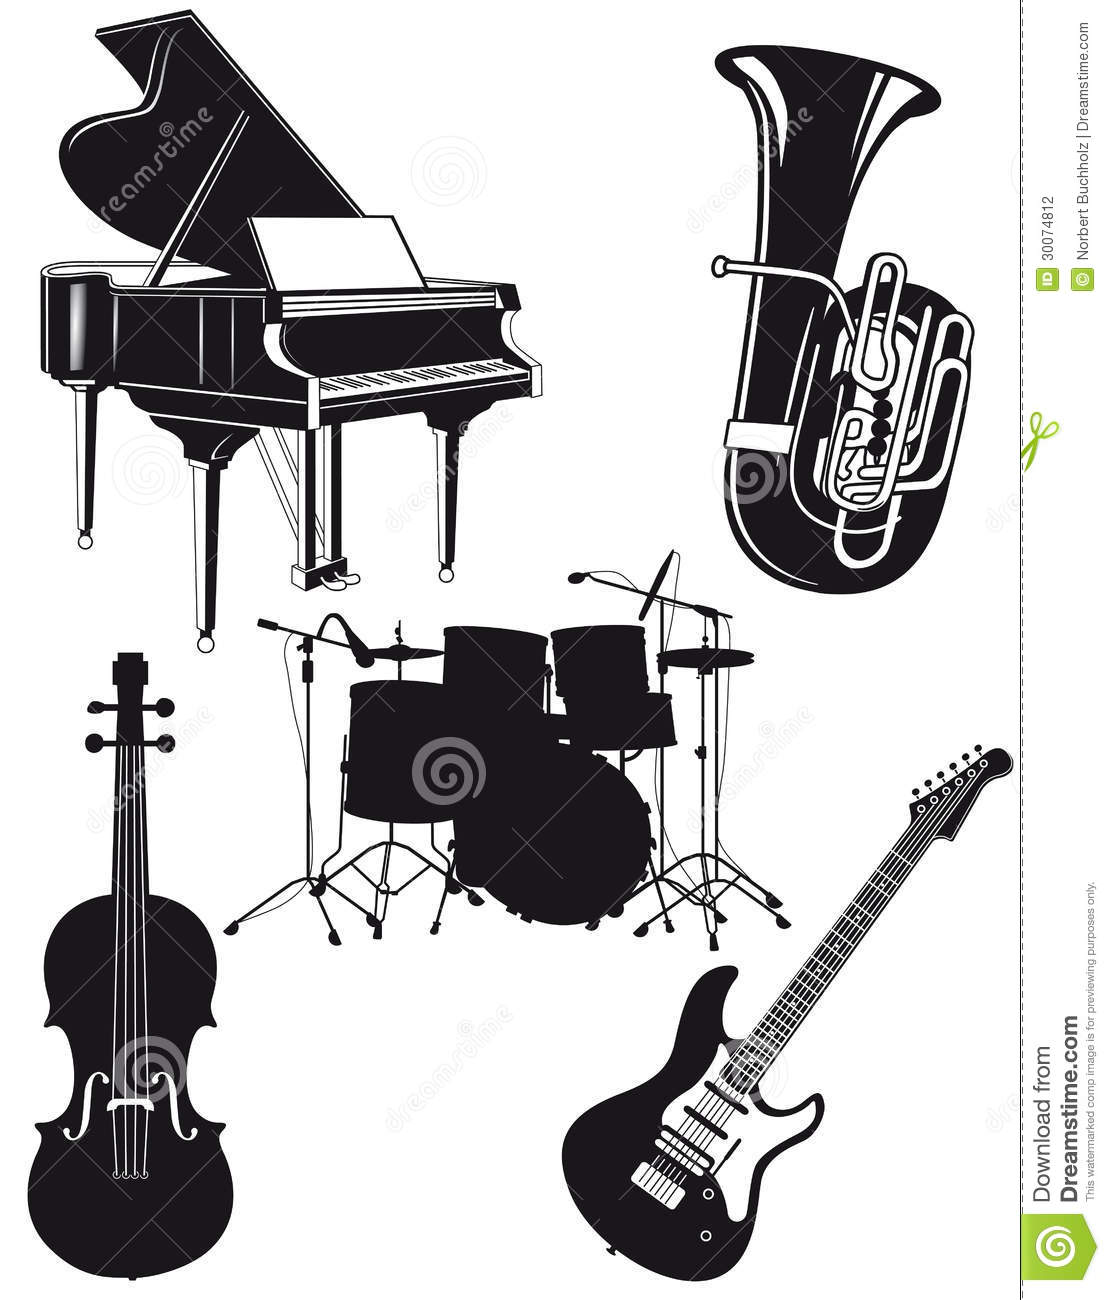 music instruments clipart black and white - photo #31